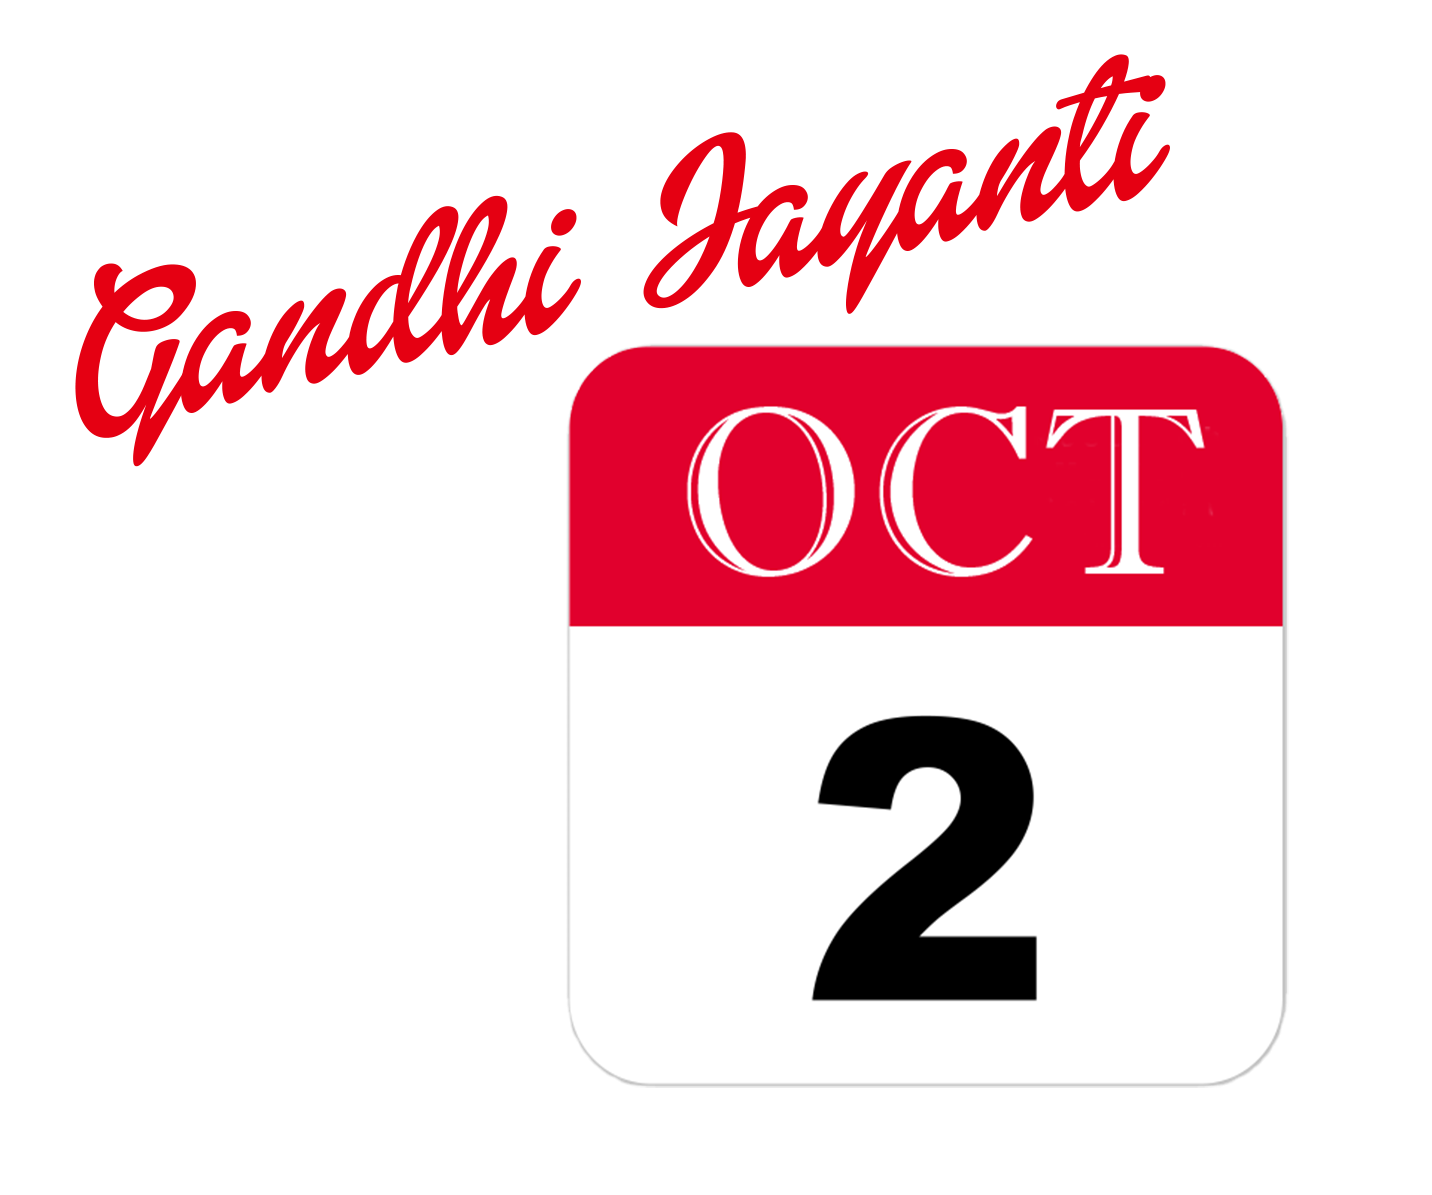 October png background. Transparent images gandhi